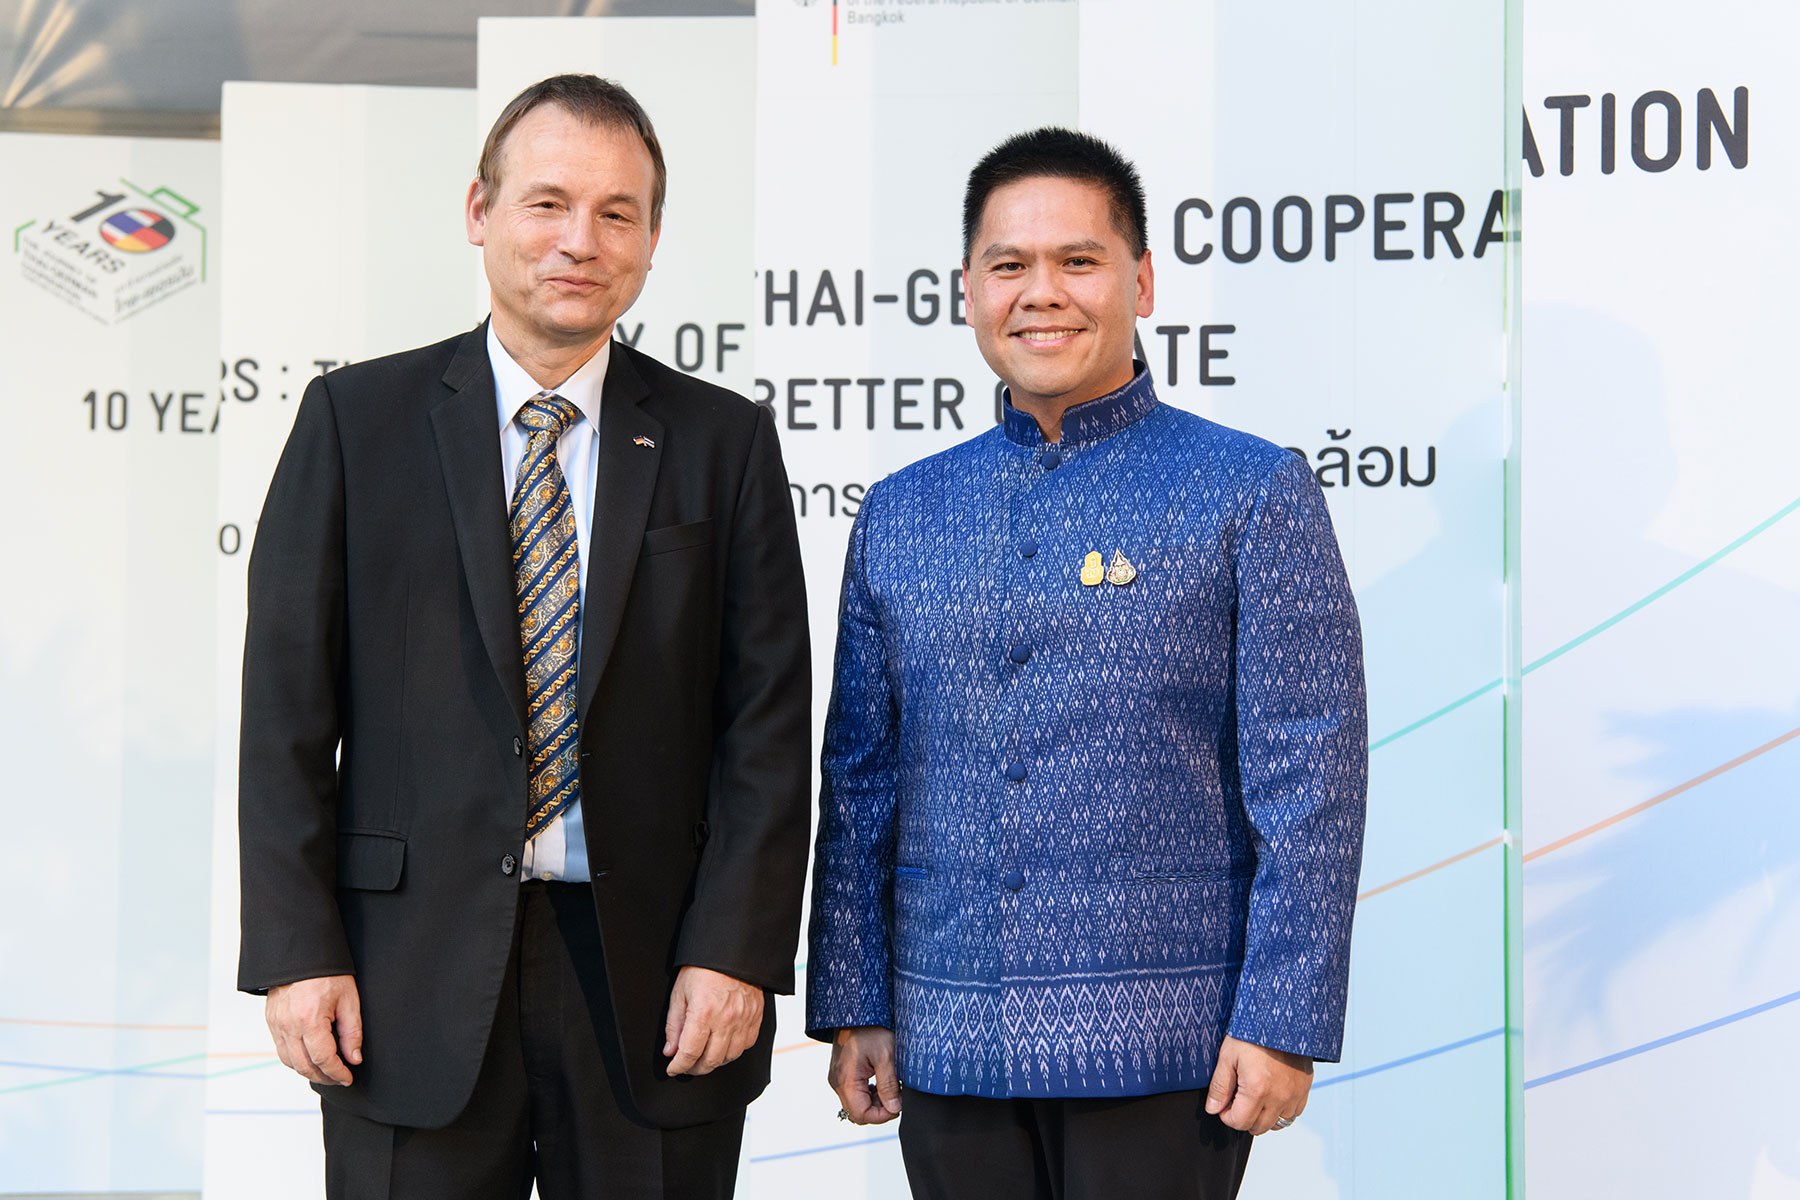 Thailand and Germany Celebrate 10 Years of Cooperation on Climate and Environment, Boosting Forces to Combat Climate Change